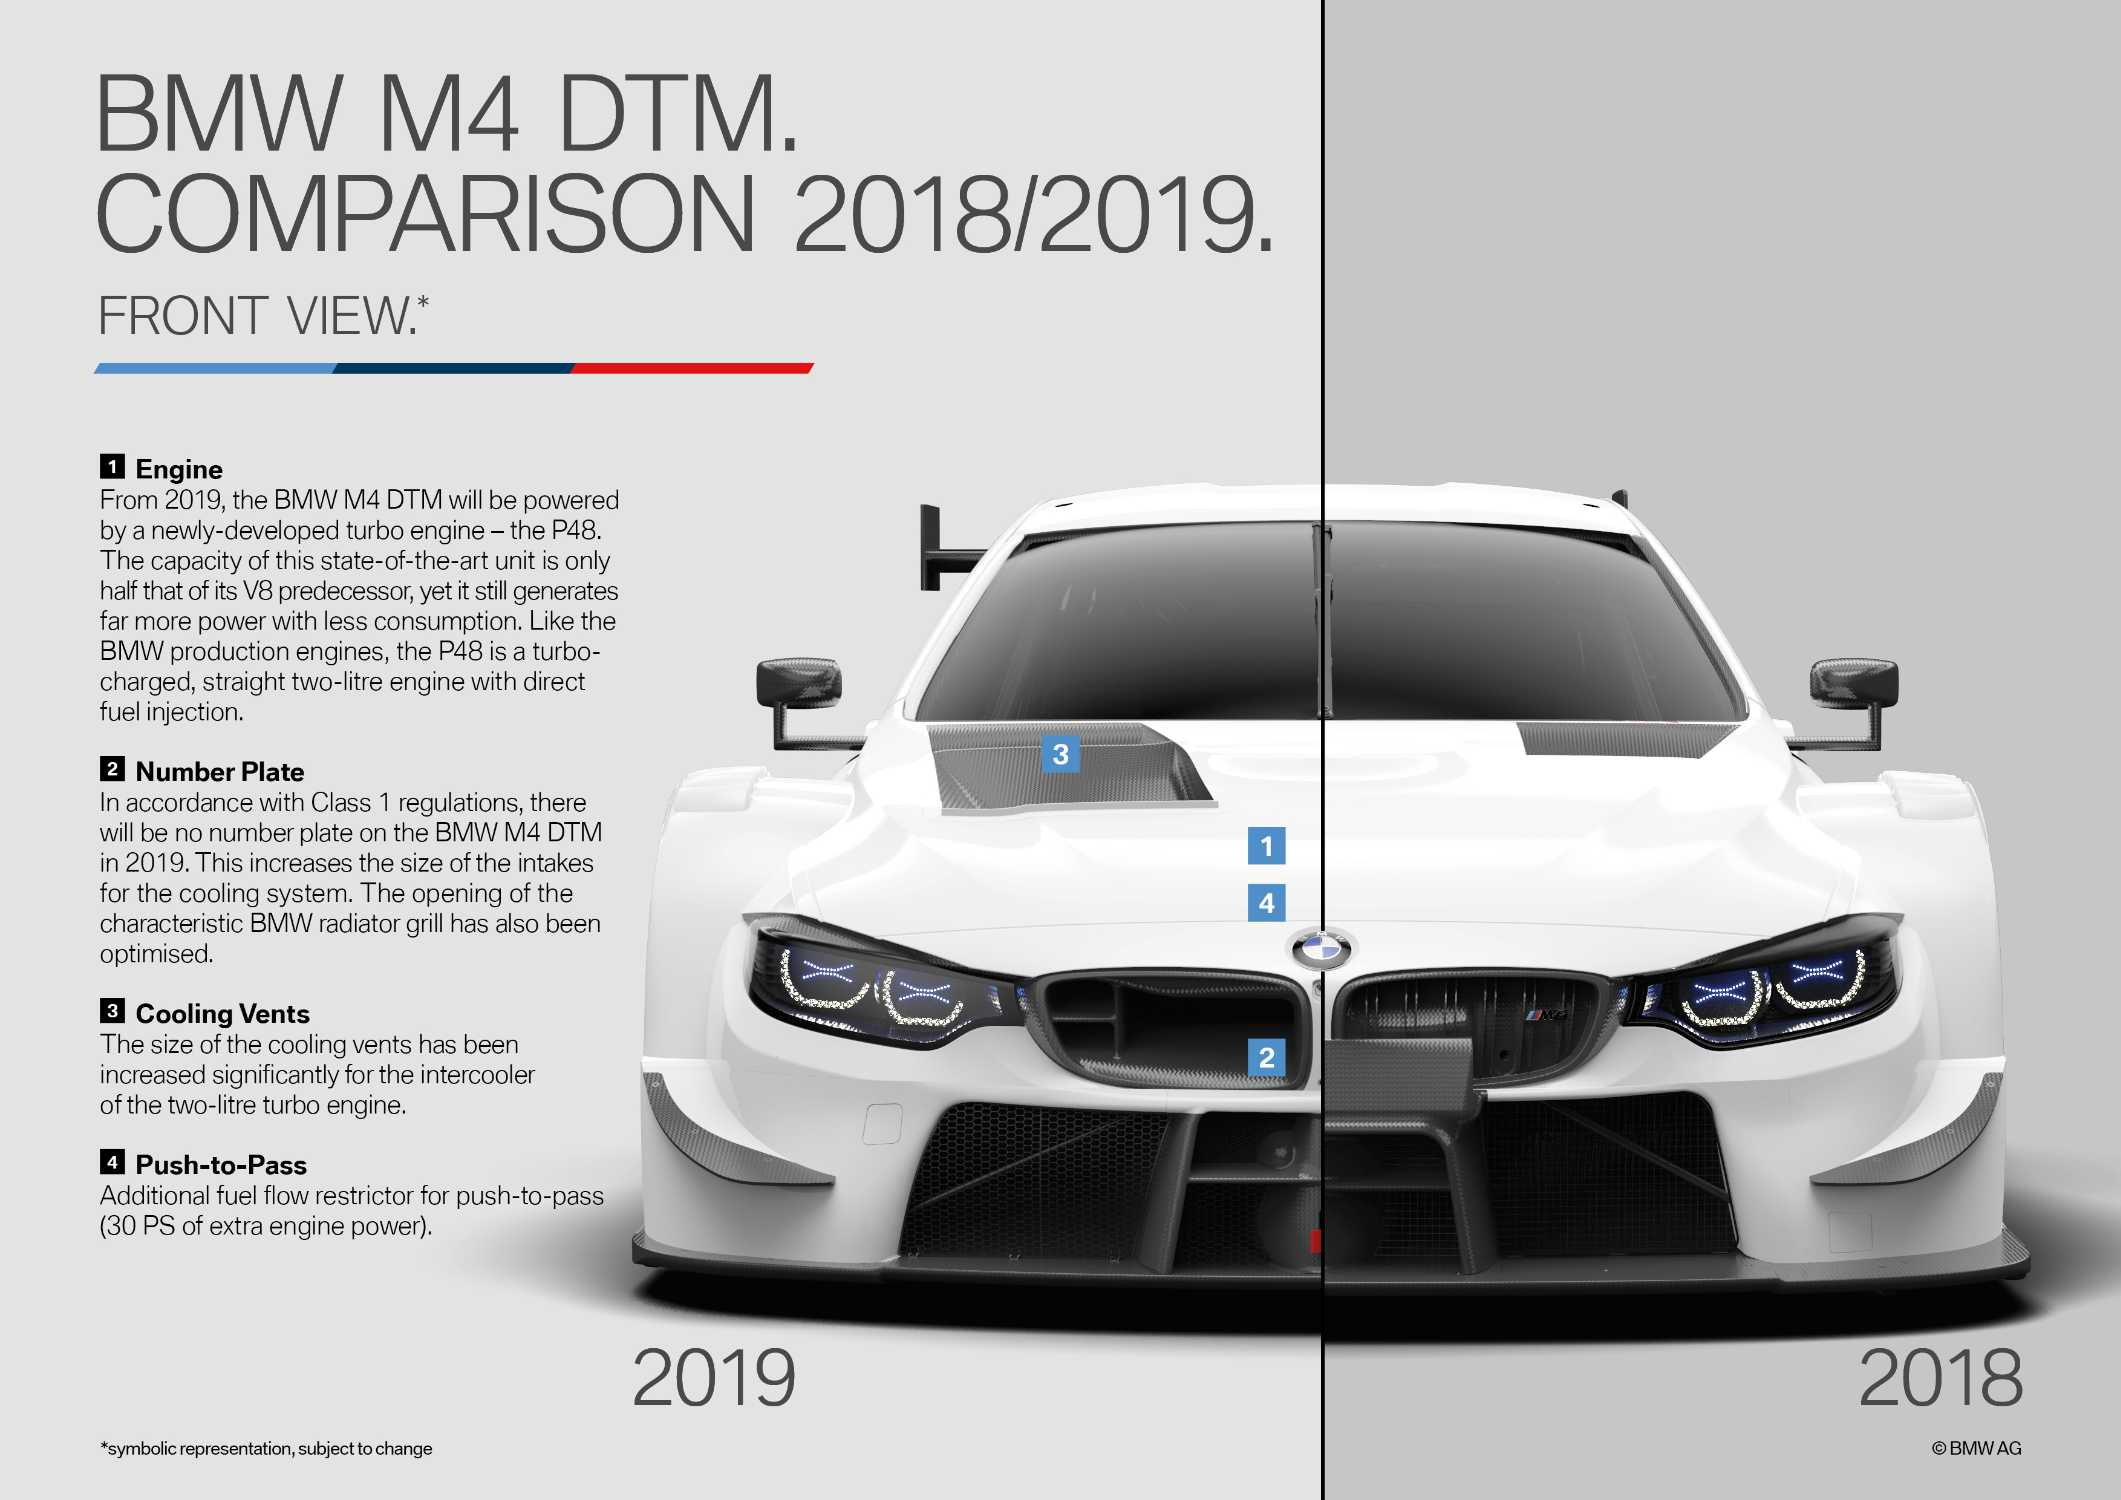 Stage Set For The Class 1 Era A Detailed Look At The New Bmw M4 Dtm